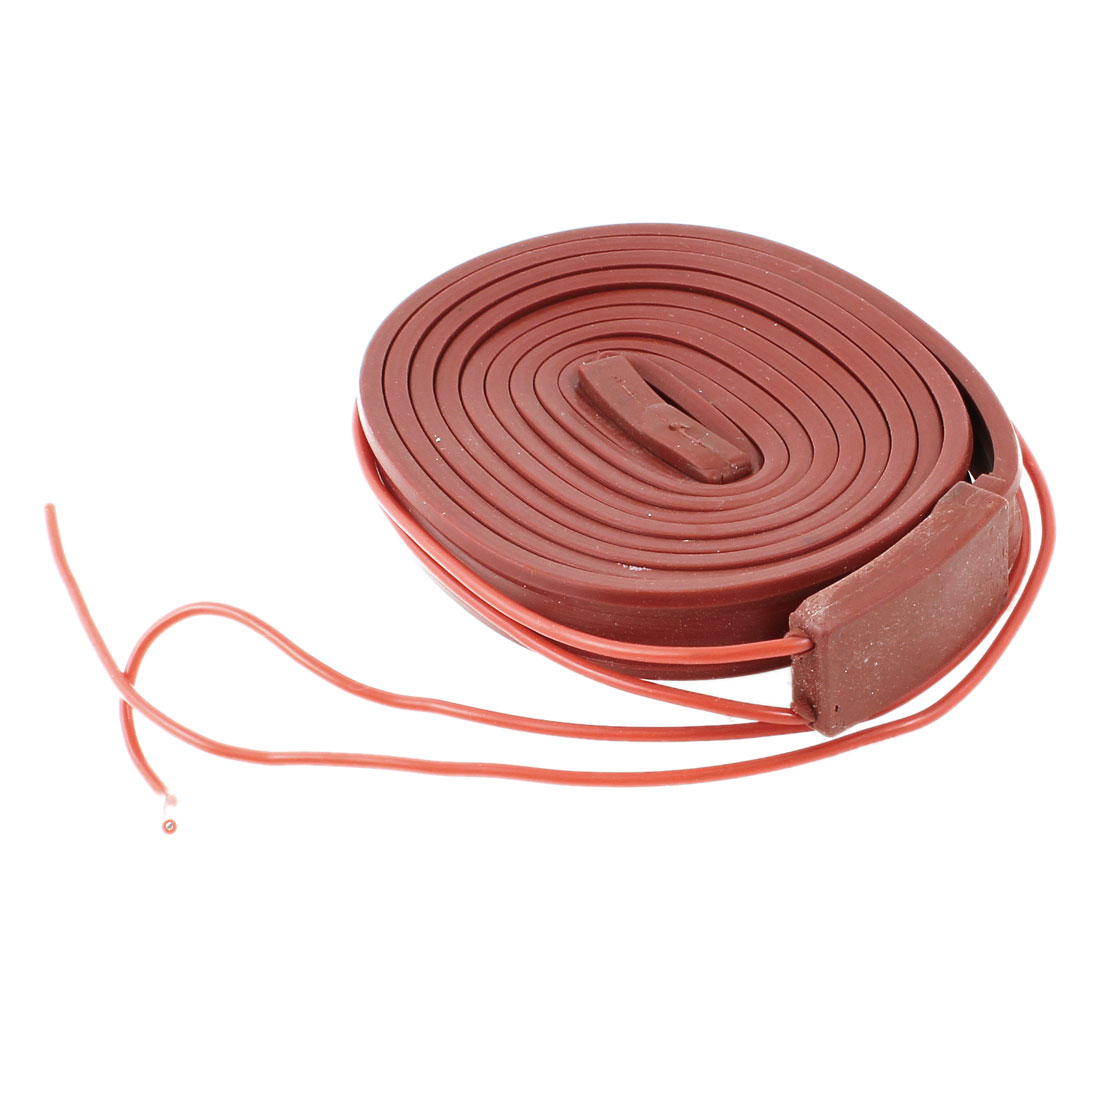 15mm Width 2M 6.6Ft Length Silicon Band Heater Strip waterproof 24V